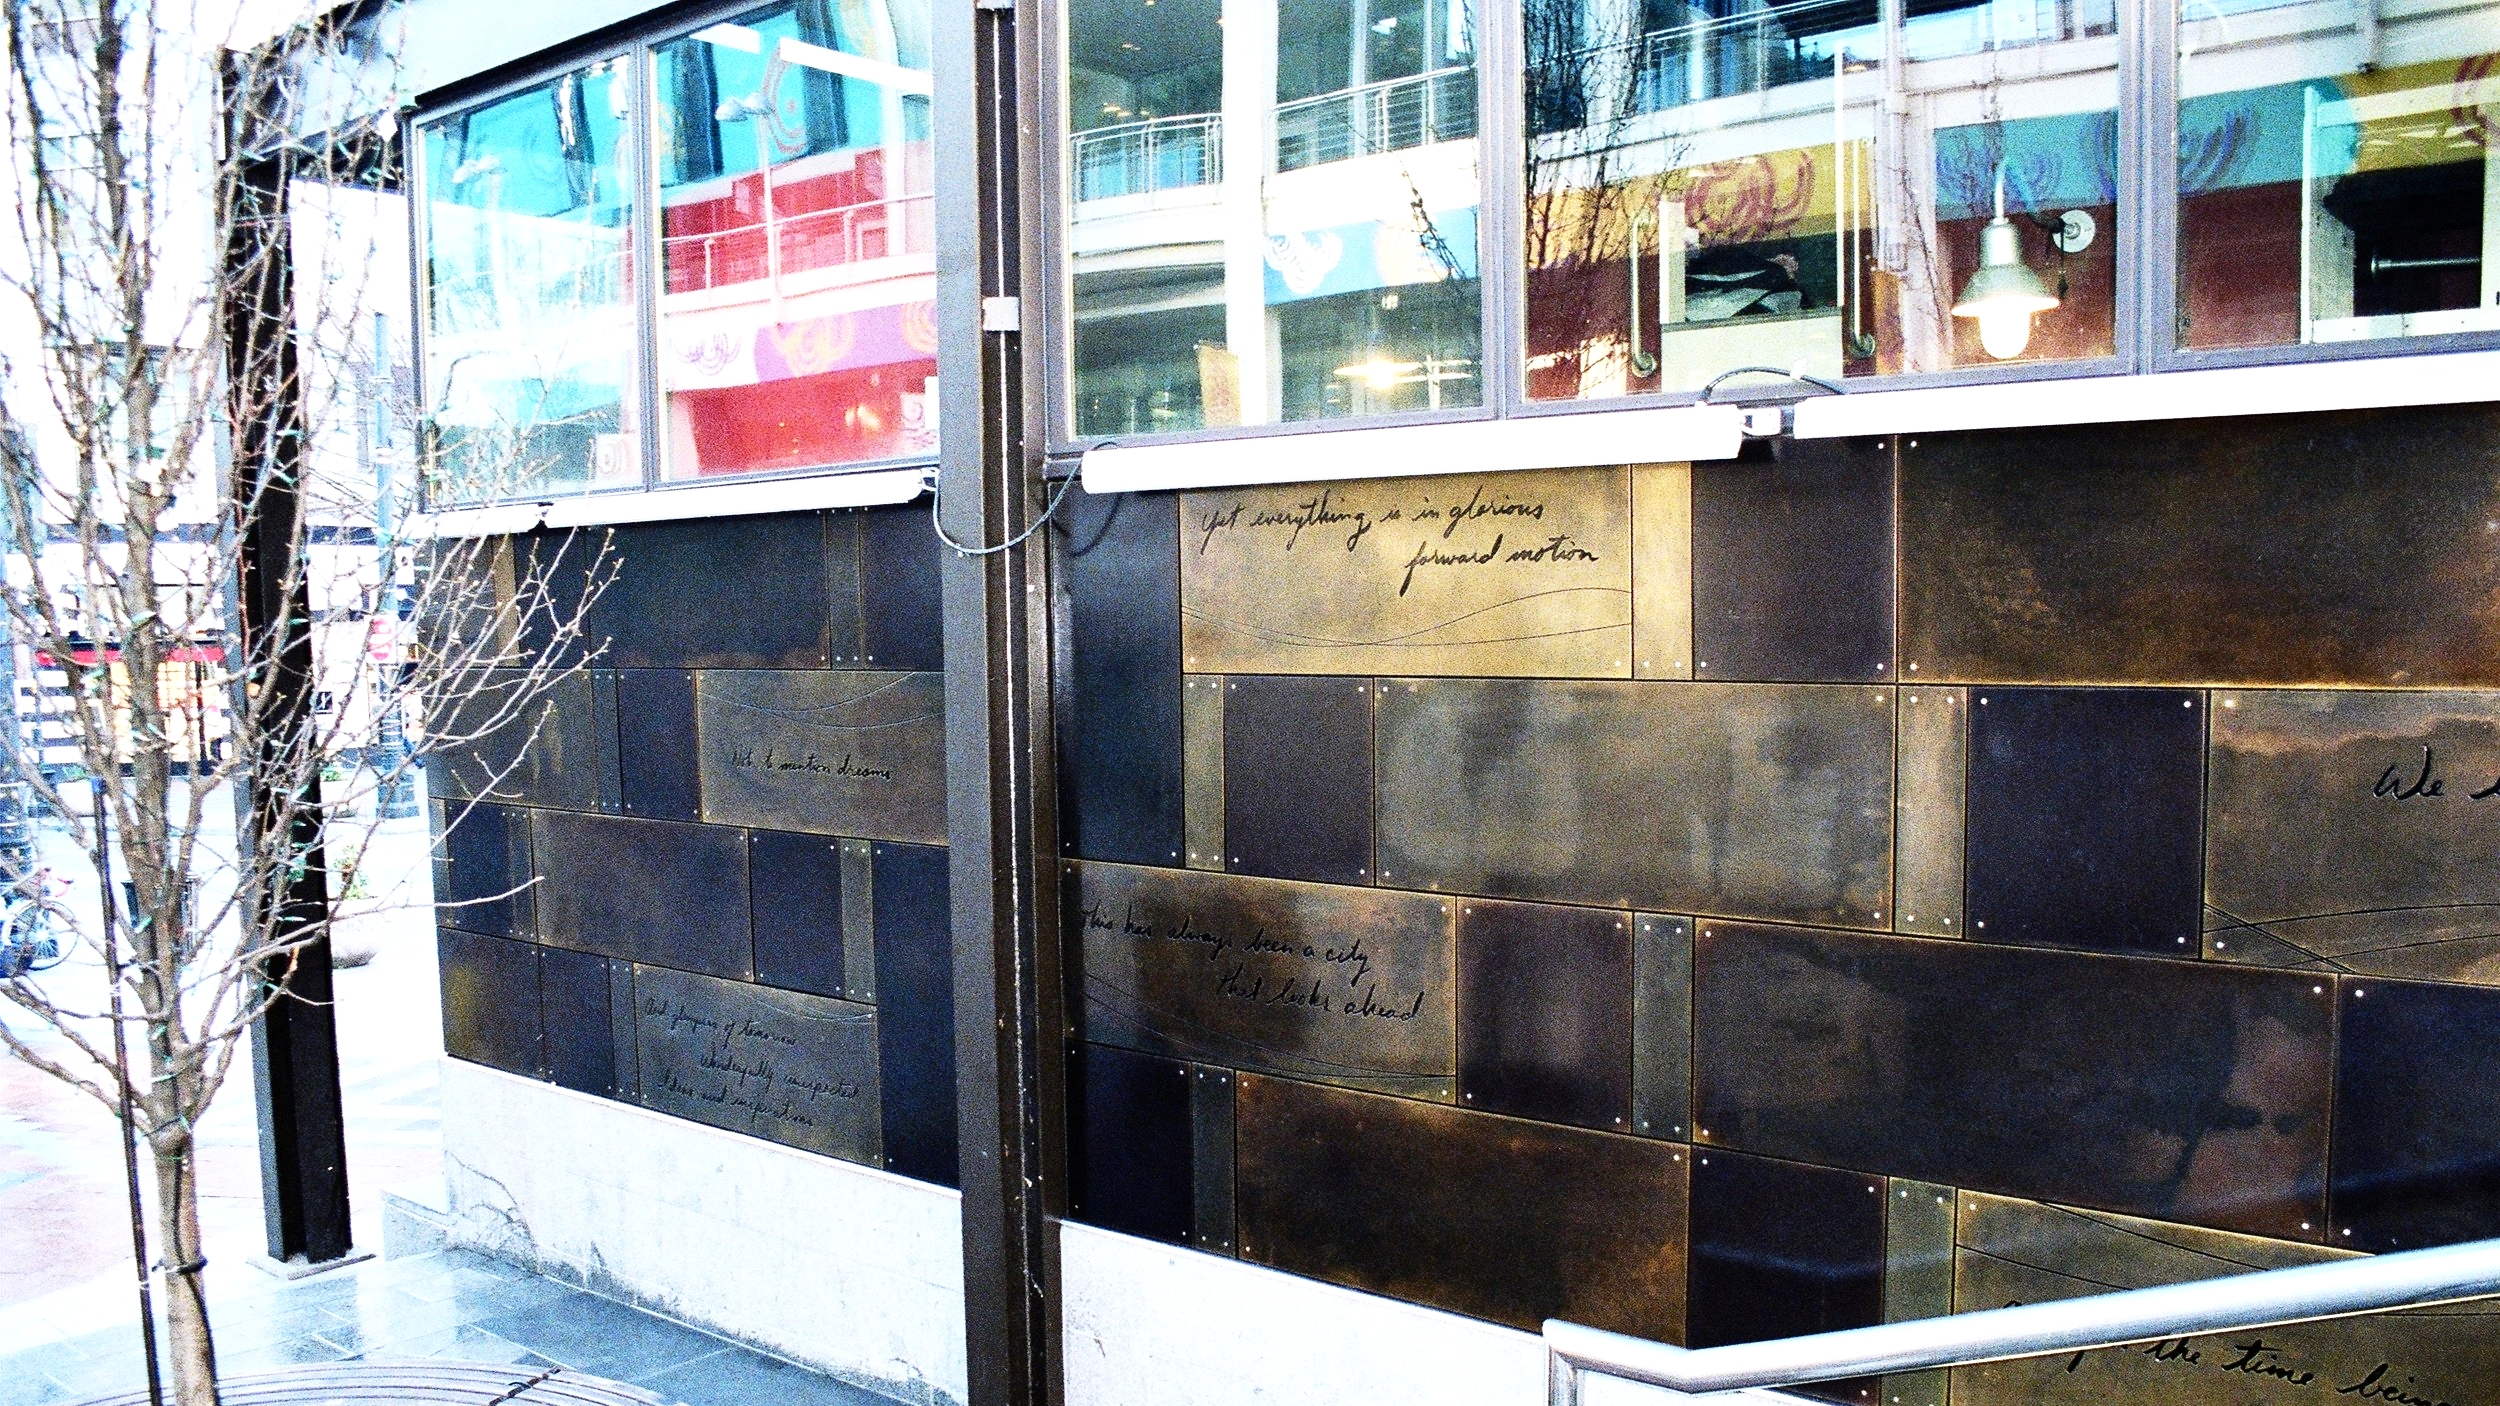 Design, fabrication and install of exterior bronze panels for Starbucks Coffee, Westlake Center, Seattle. The panels are etched and patinated naval bronze. 1999.